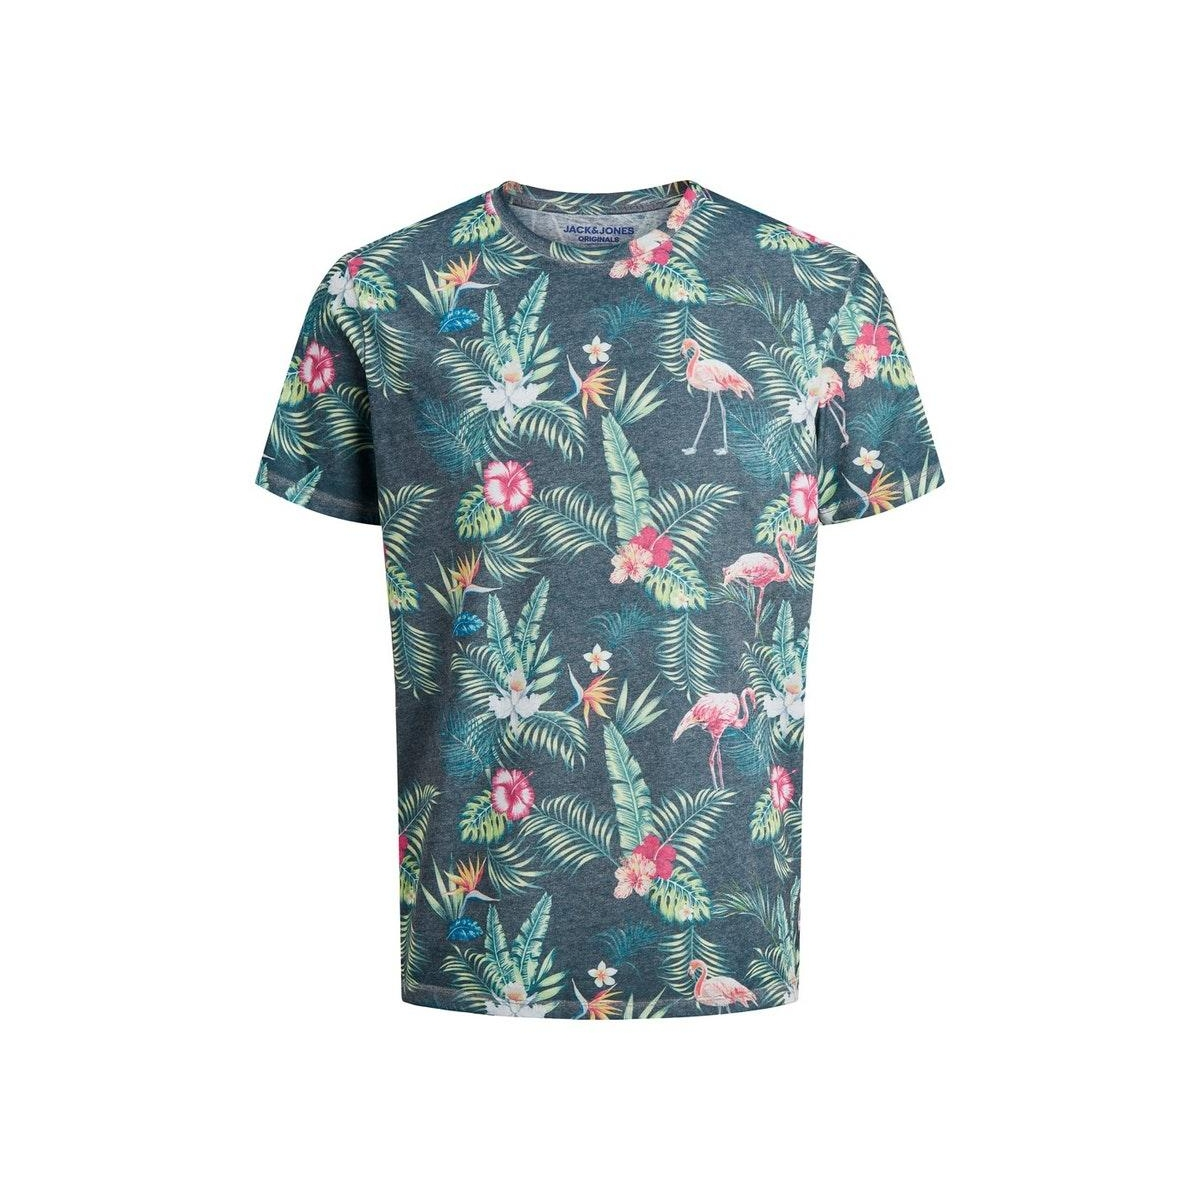 jortropicalbirds tee ss crew neck 12173071 jack & jones t-shirt blue depths